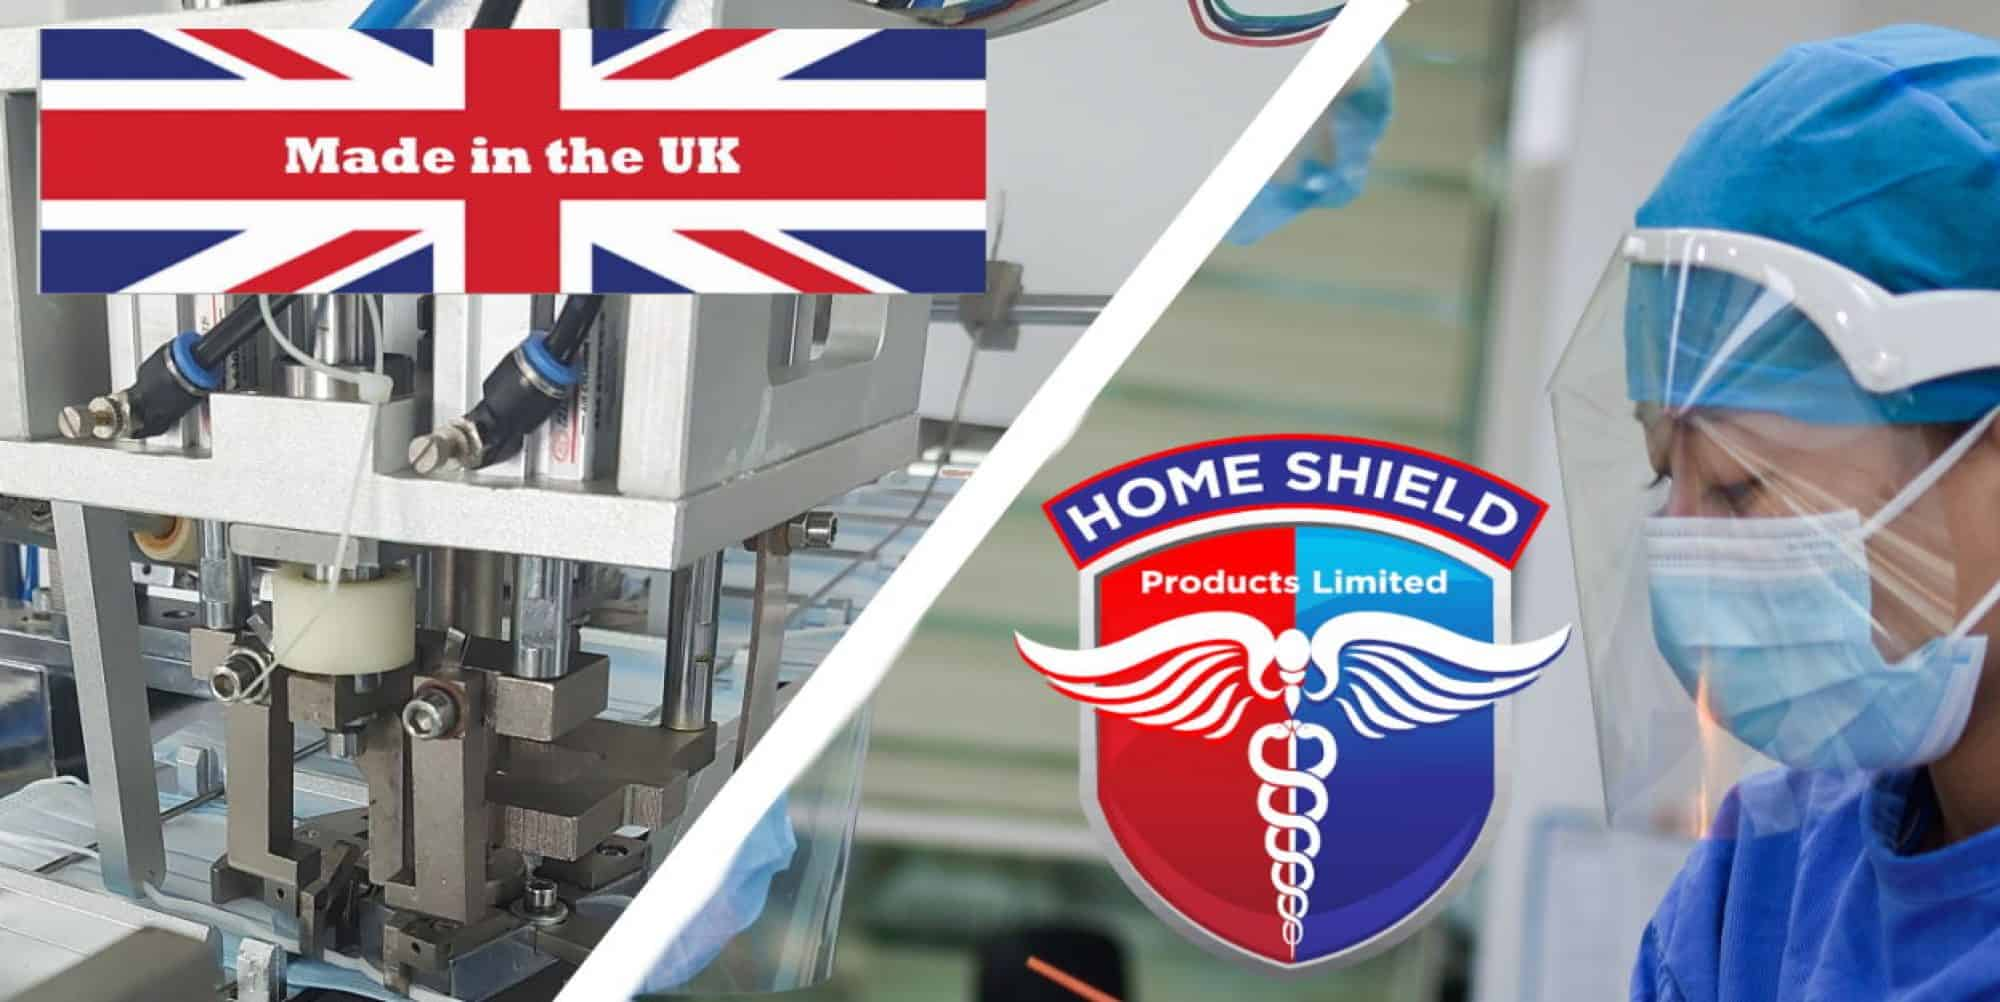 Home Shield Products